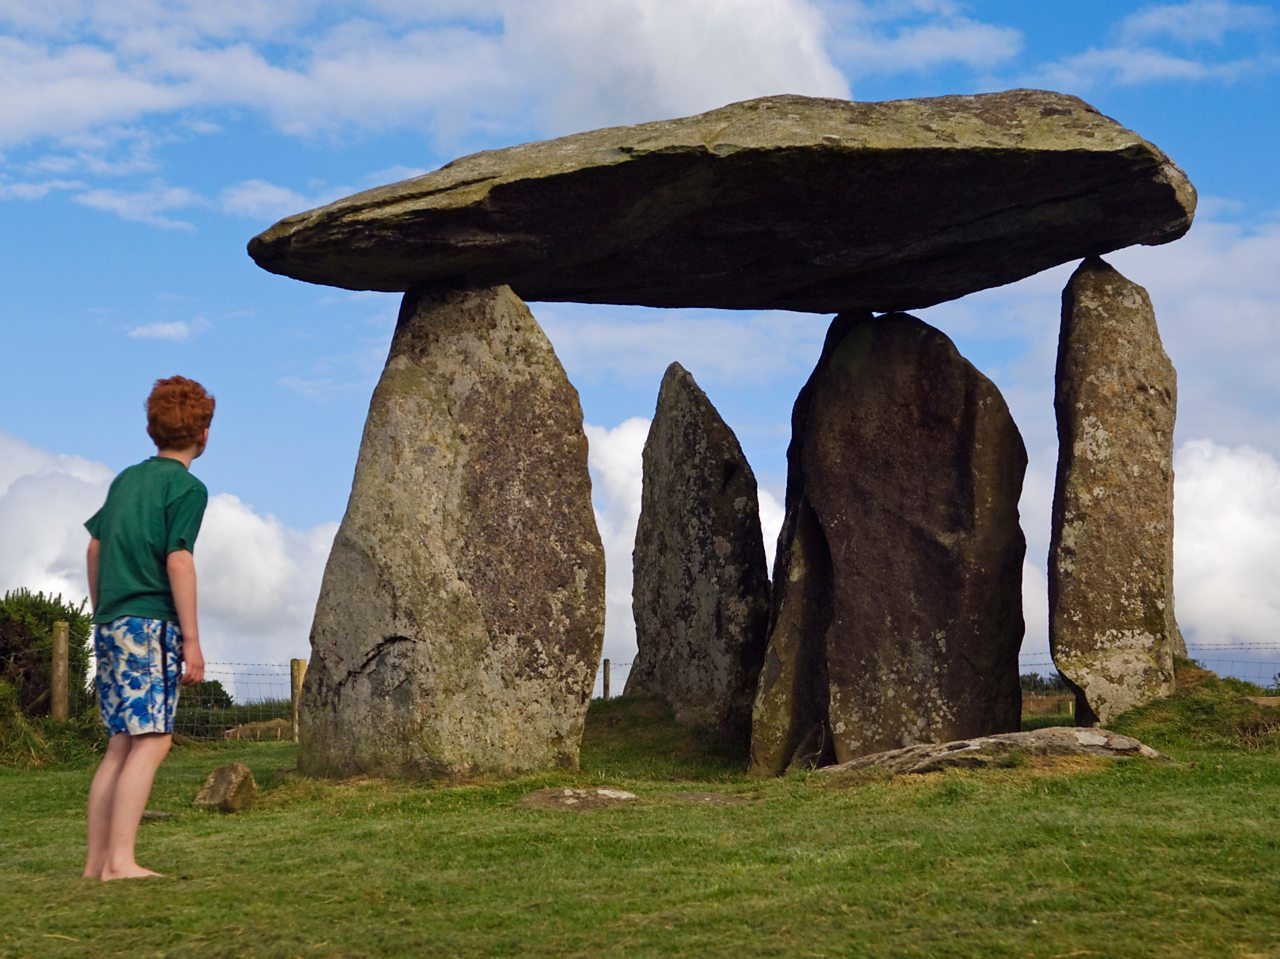 The ancient neolithic dolmen at Pentre Ifan in Wales is a vast Celtic burial mound